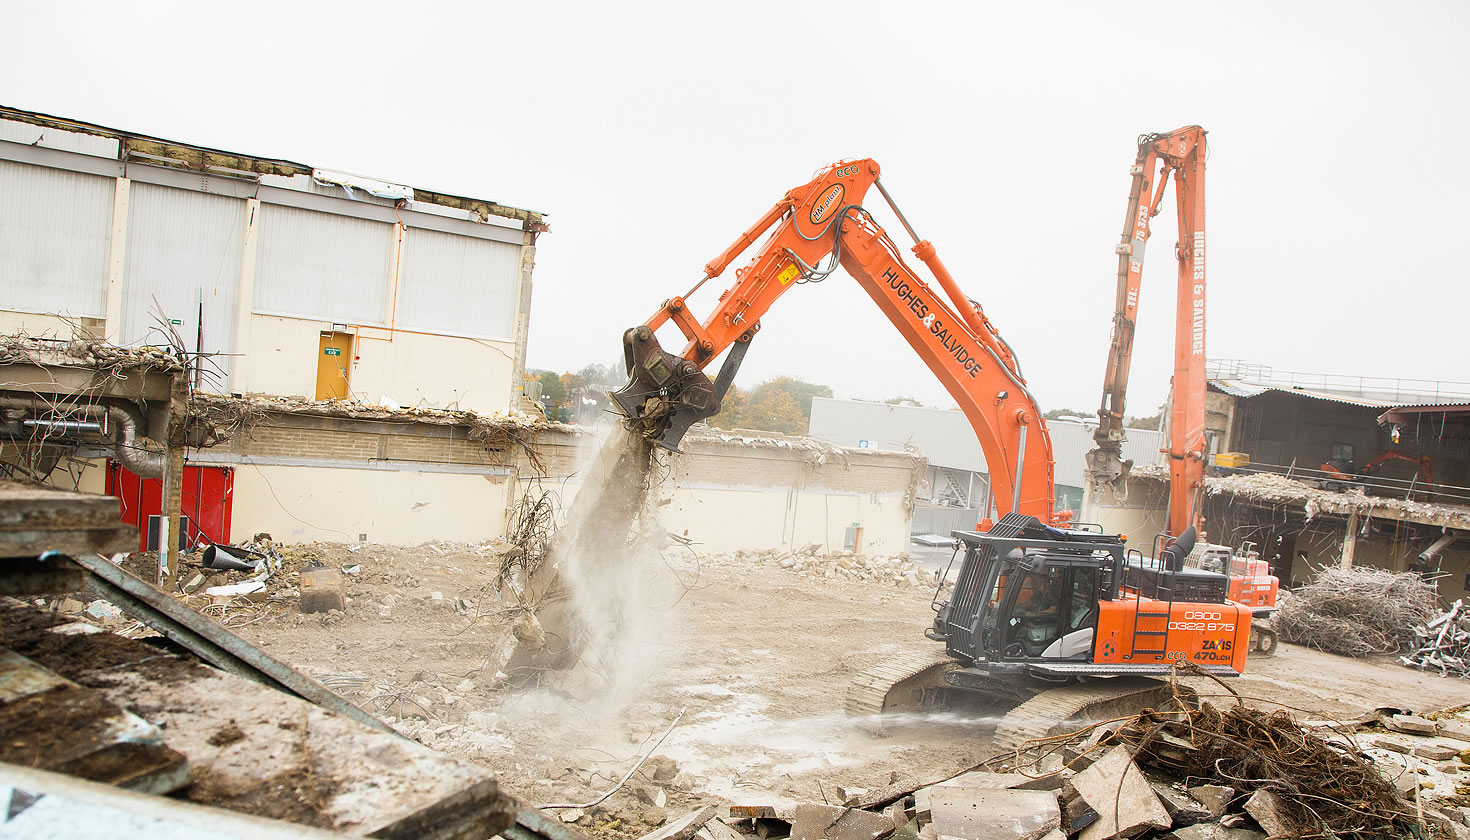 Hitachi ZX470LCH-5 excavator with cab modifications